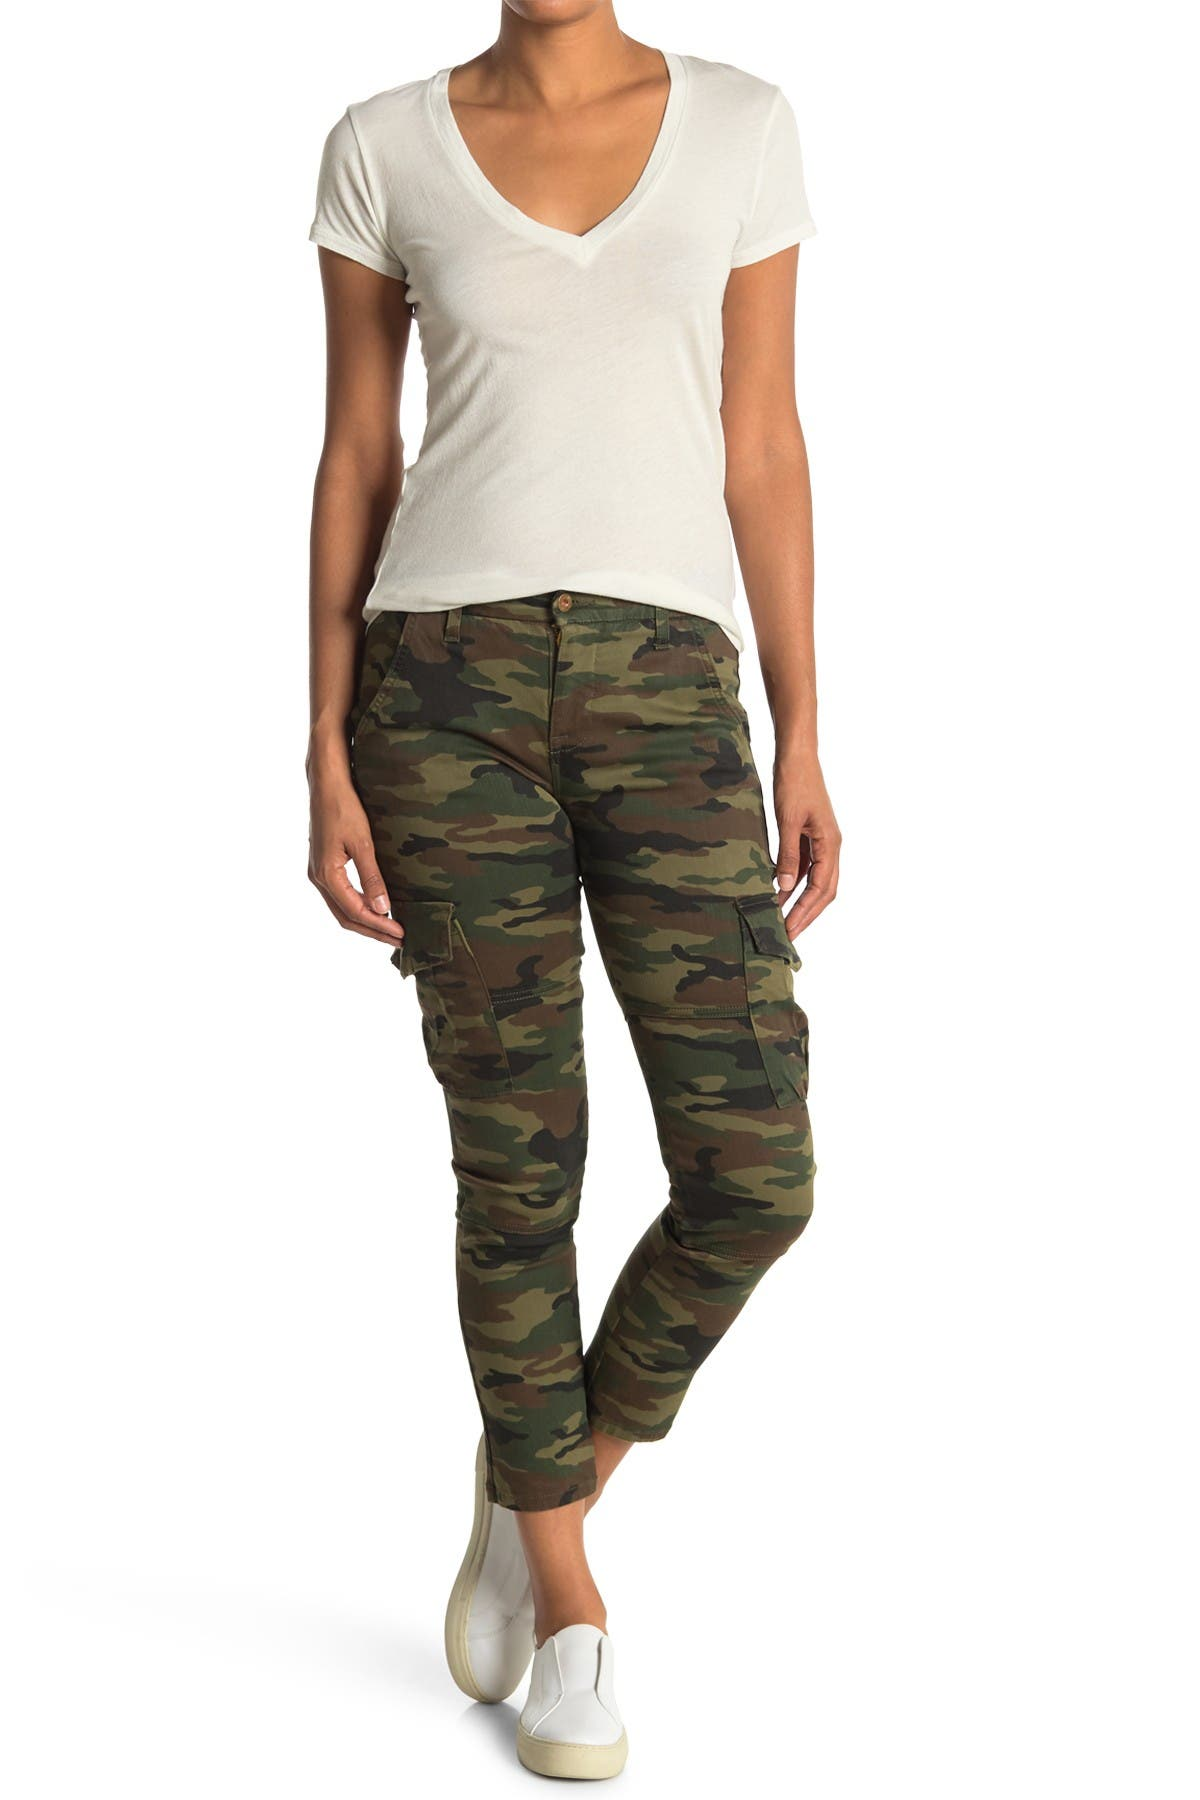 Image of NSF CLOTHING Vincent Camo Cargo Pants